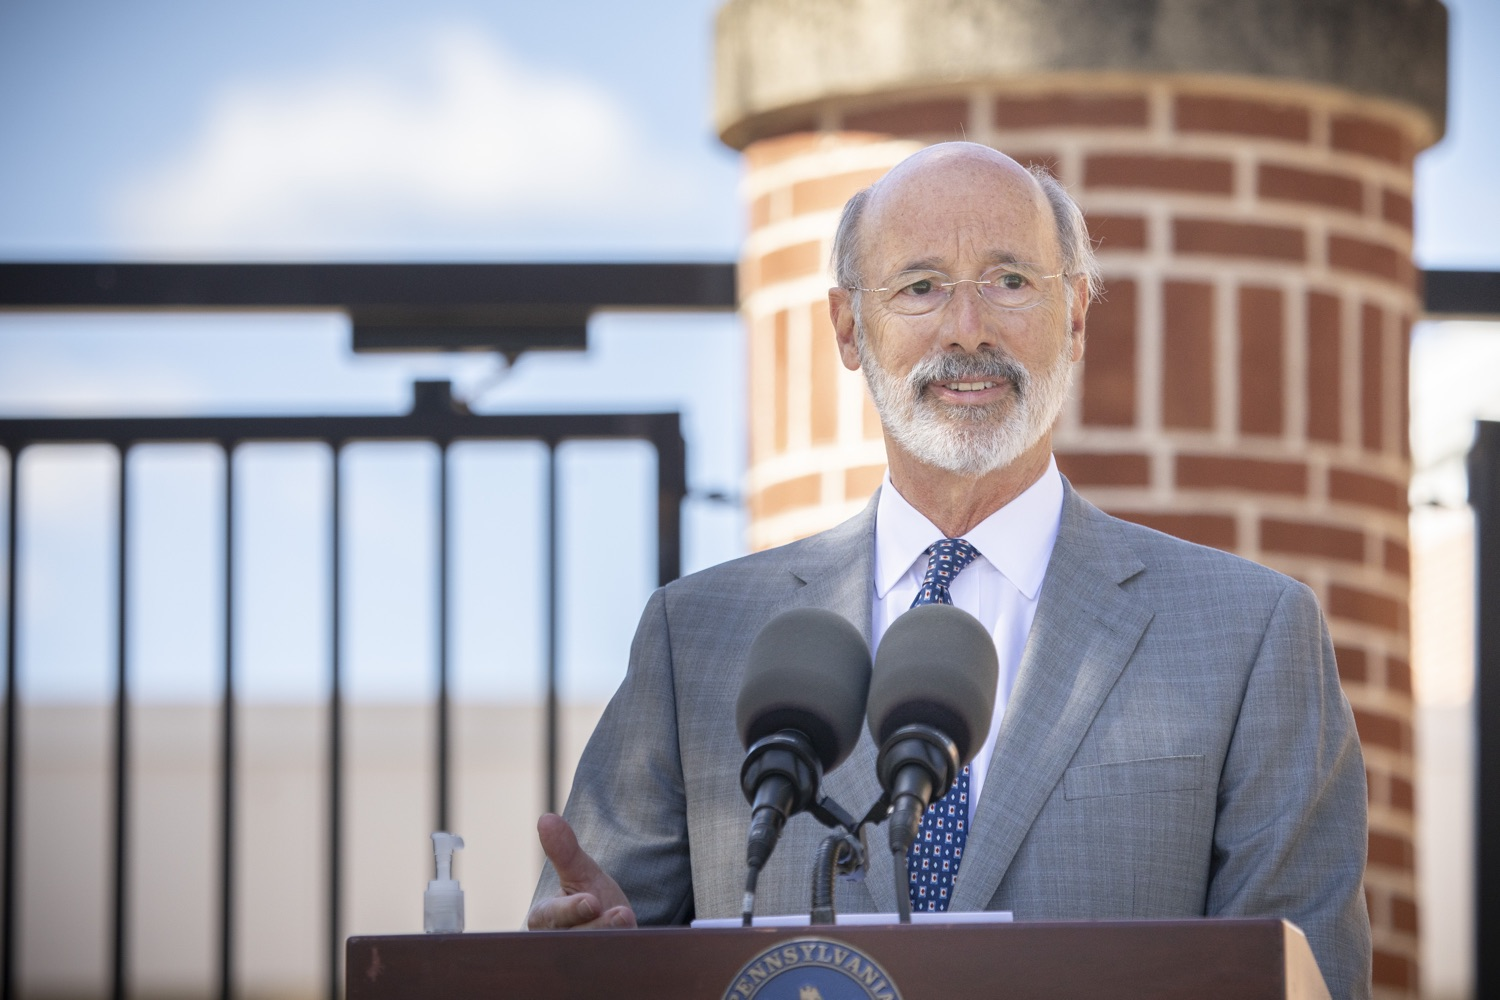 "<a href=""https://filesource.wostreaming.net/commonwealthofpa/photo/18306_gov_aca_dz_001.jpg"" target=""_blank"">⇣ Download Photo<br></a>Pennsylvania Governor Tom Wolf speaking with the press.  Governor Tom Wolf today amplified his call to protect the ACA and provide health care for all amid threats as the US Senate Judiciary Committee hearings to confirm conservative Judge Amy Coney Barrett to the Supreme Court begin next week and the pandemic ramps up across the country. York, PA  October 8, 2020"